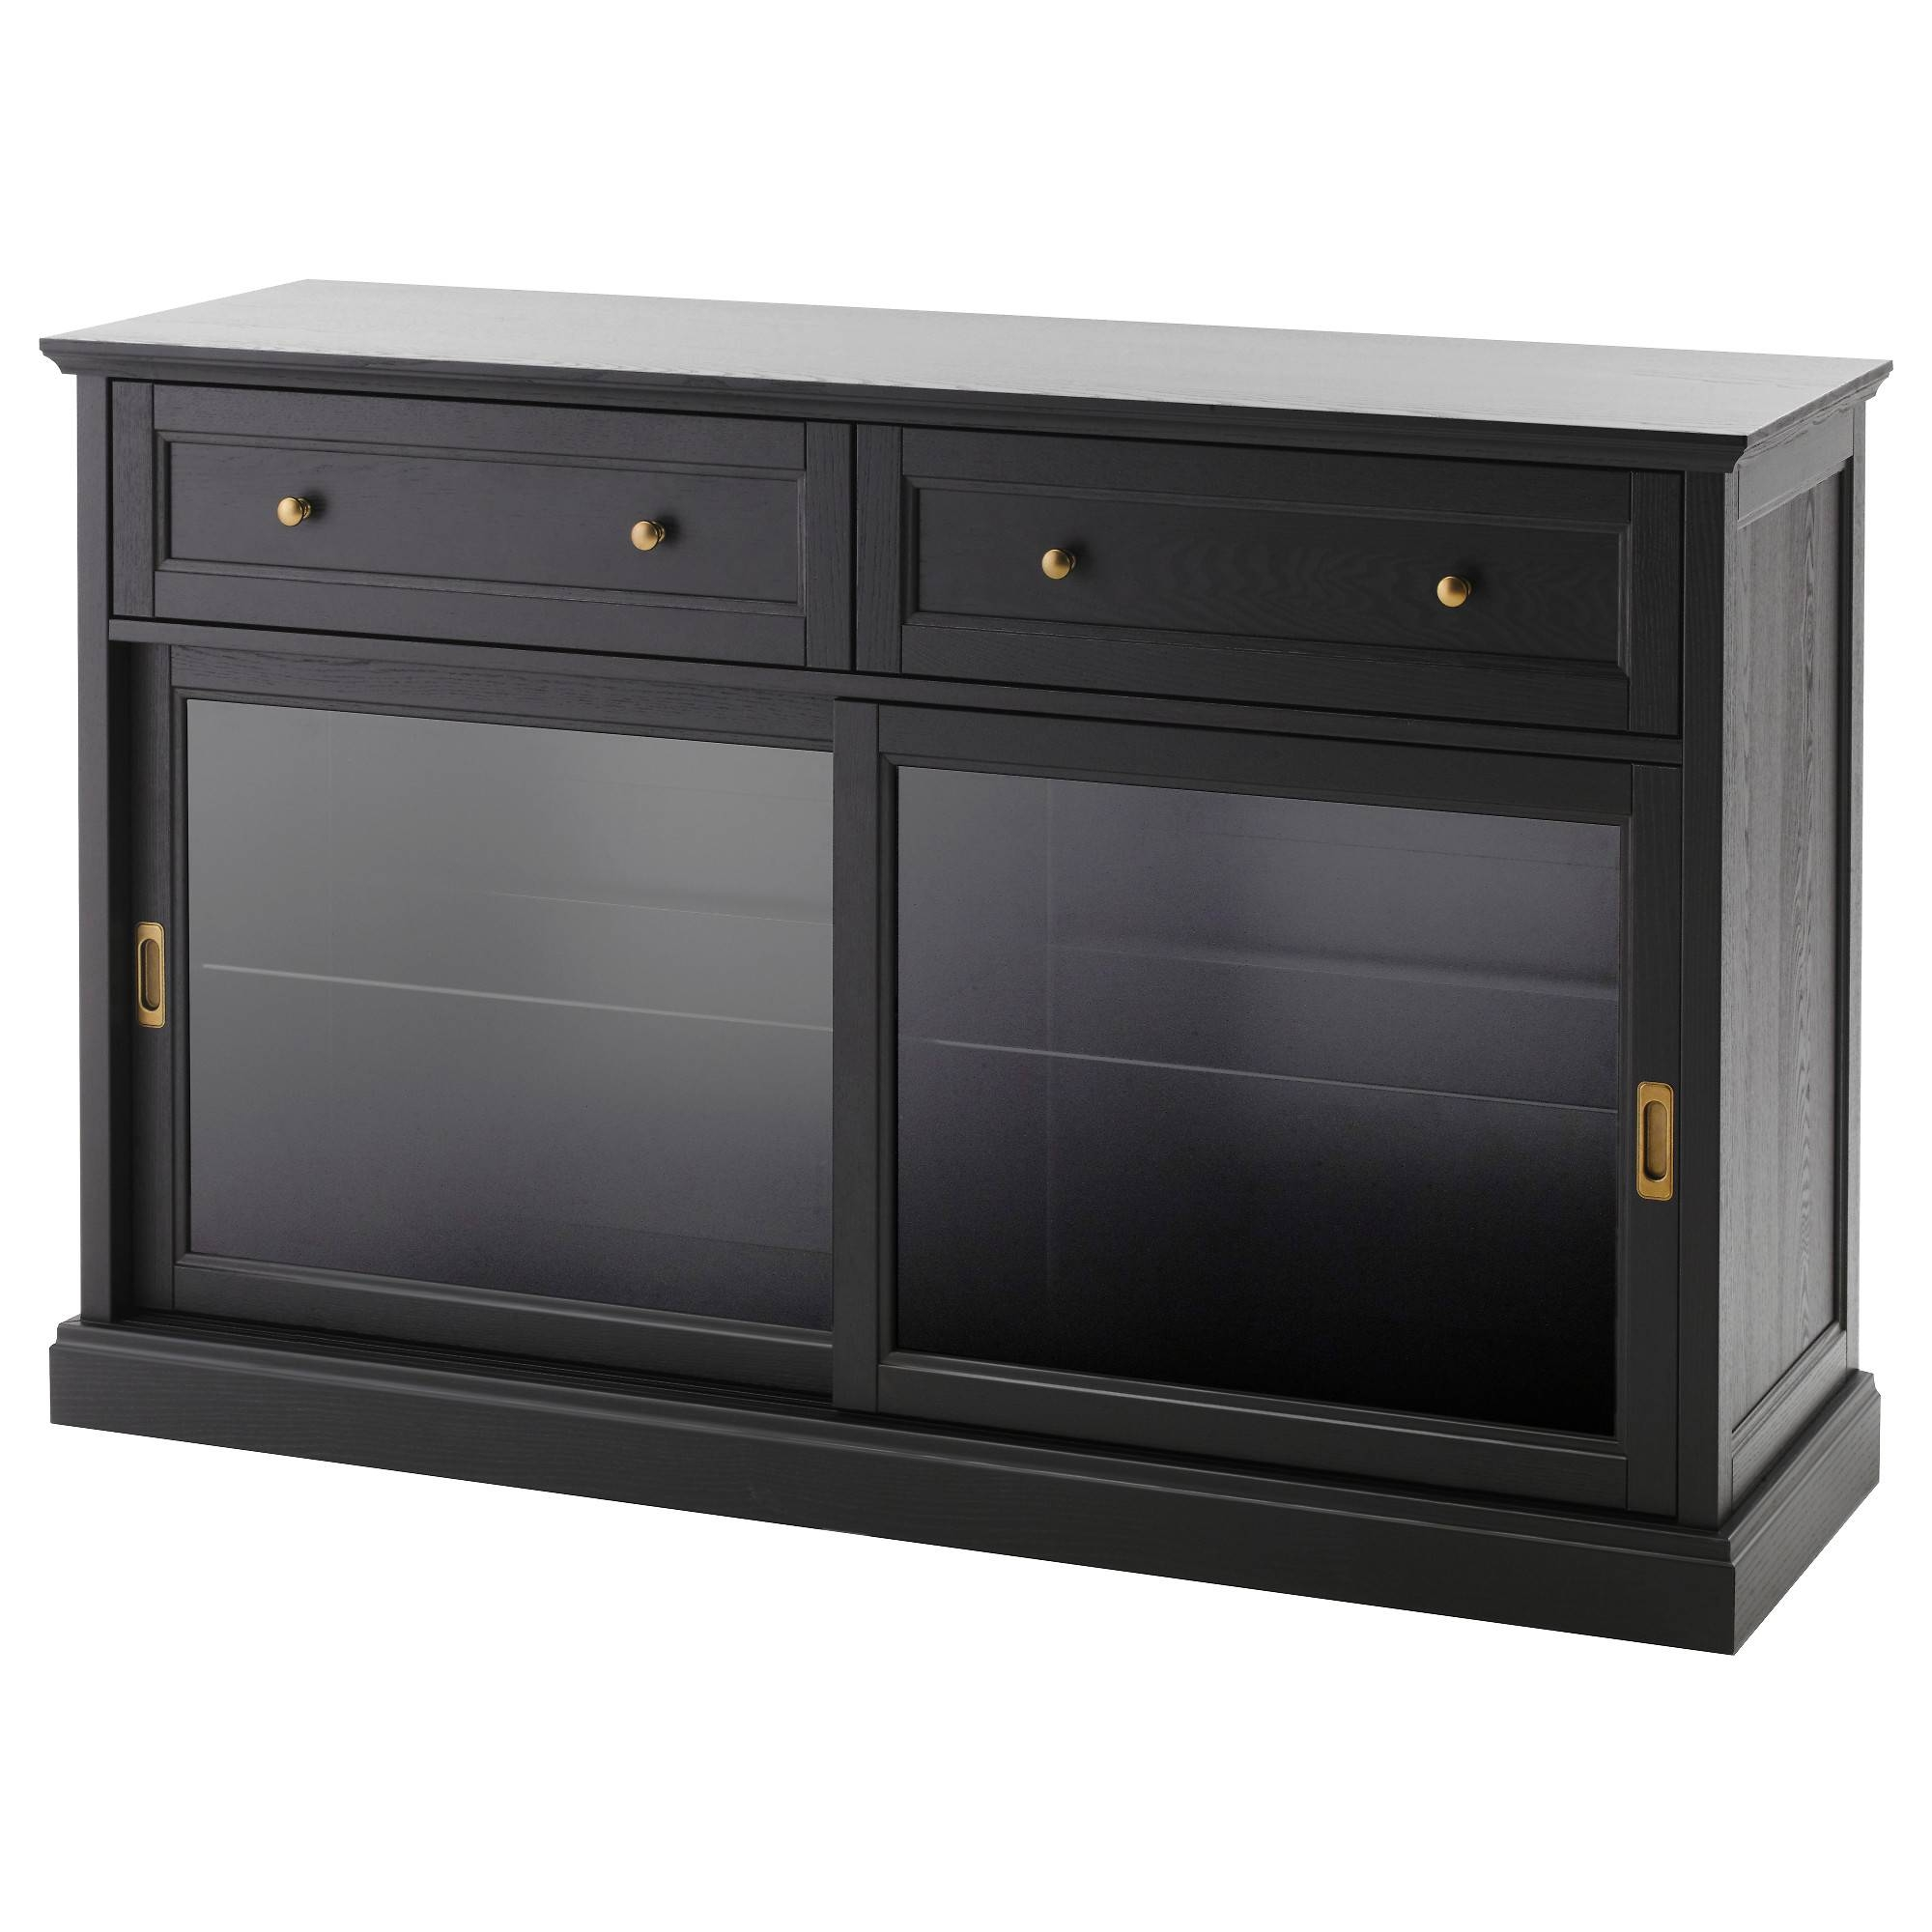 Buffet Tables & Sideboards – Ikea Intended For Small Mirrored Sideboards (View 2 of 30)